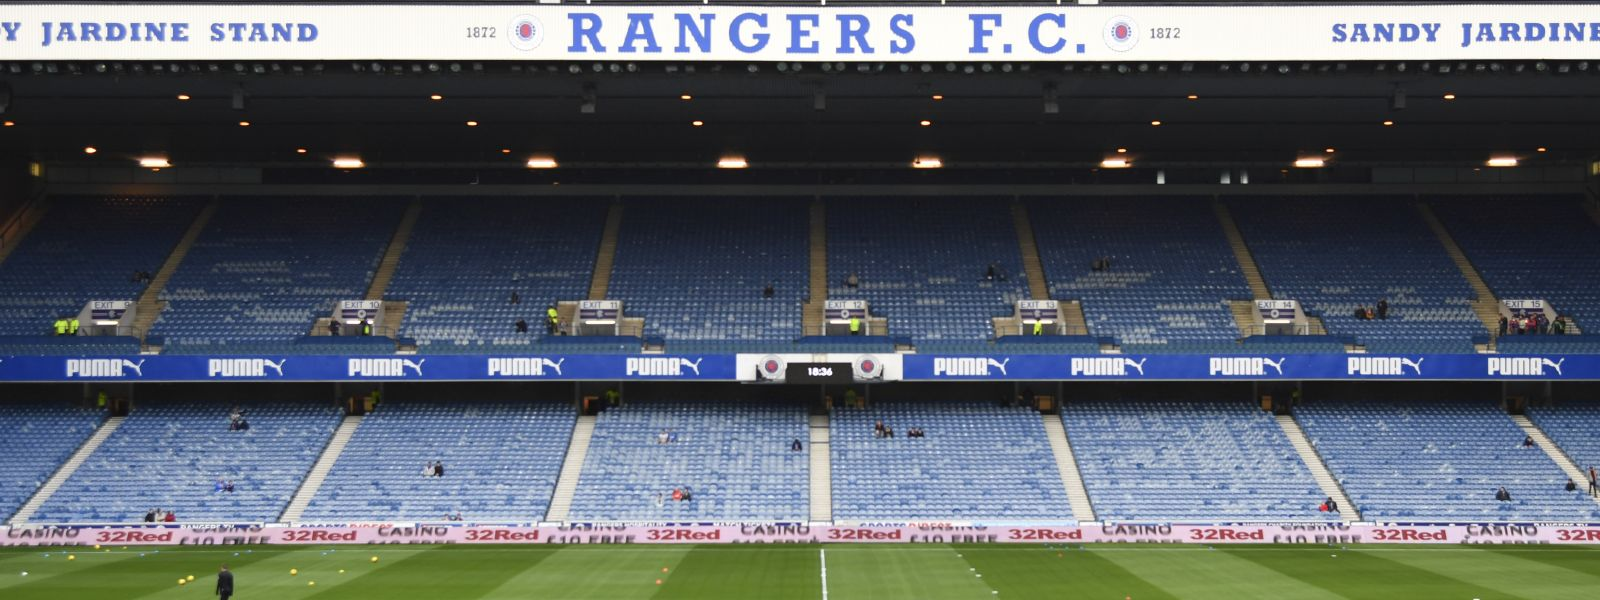 The systemic failure which cost Rangers over two years